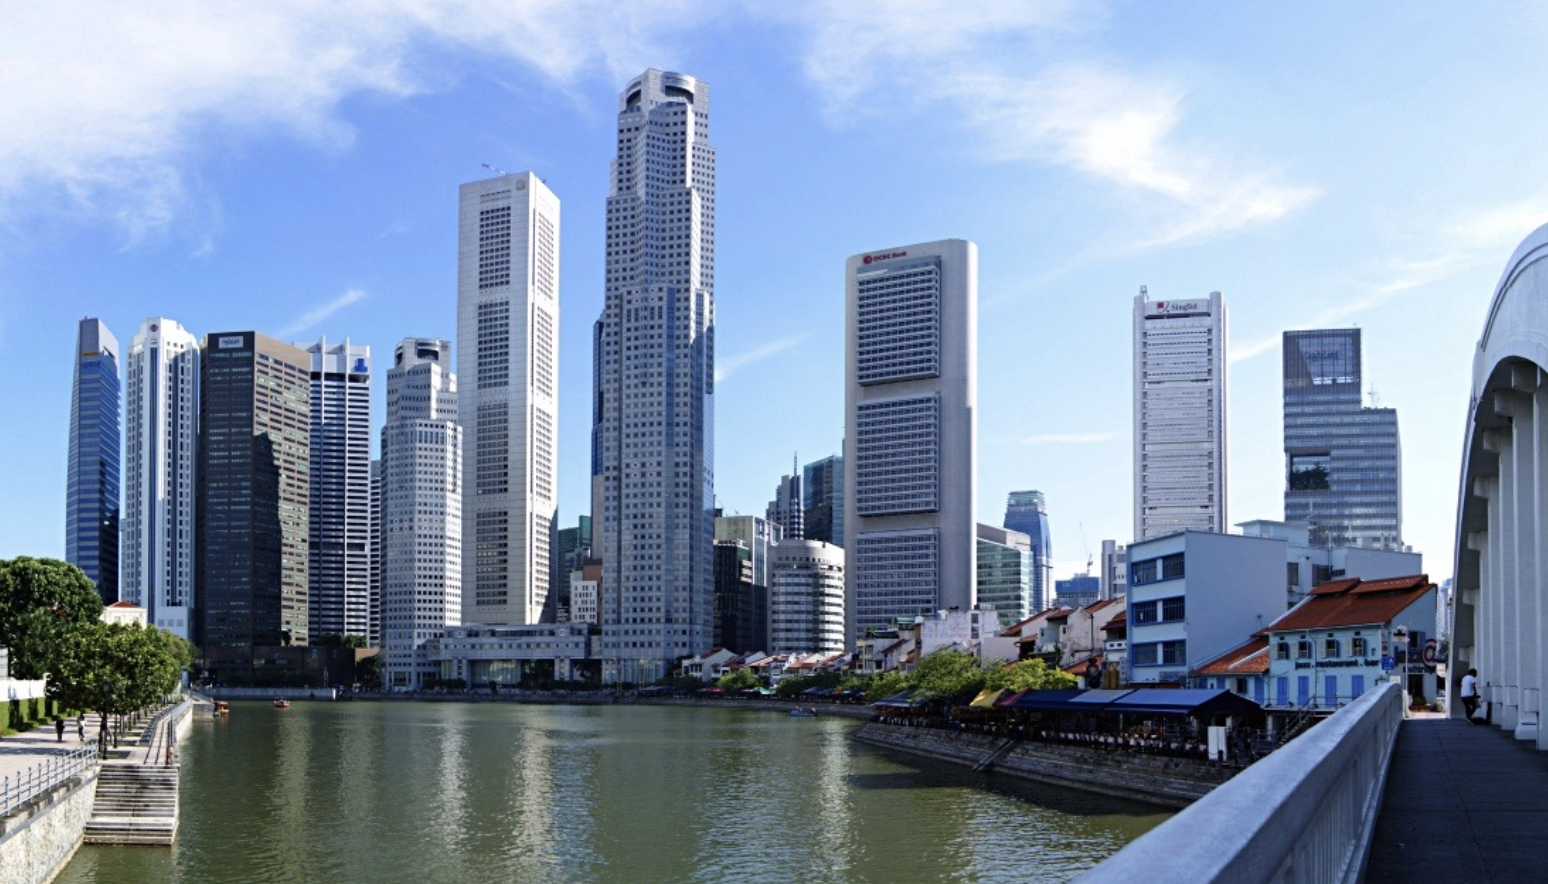 Singapore back to phase two reopening from May 8, to impose tighter border measures